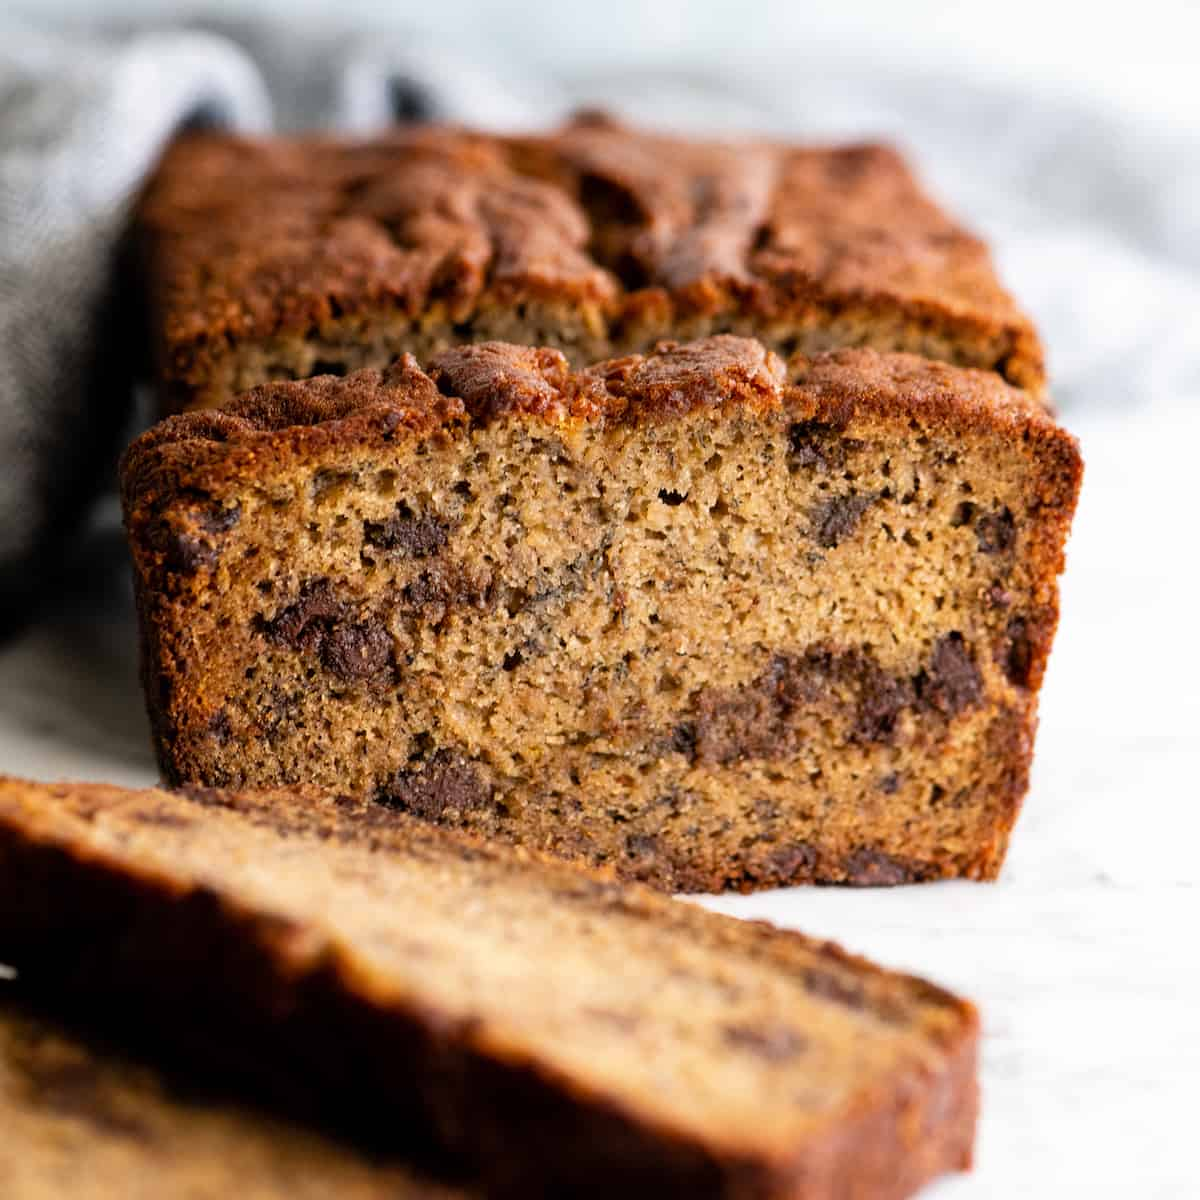 front view of a loaf of chocolate chip banana bread with slices cut out of it, some laying on the table one standing up in front of the loaf